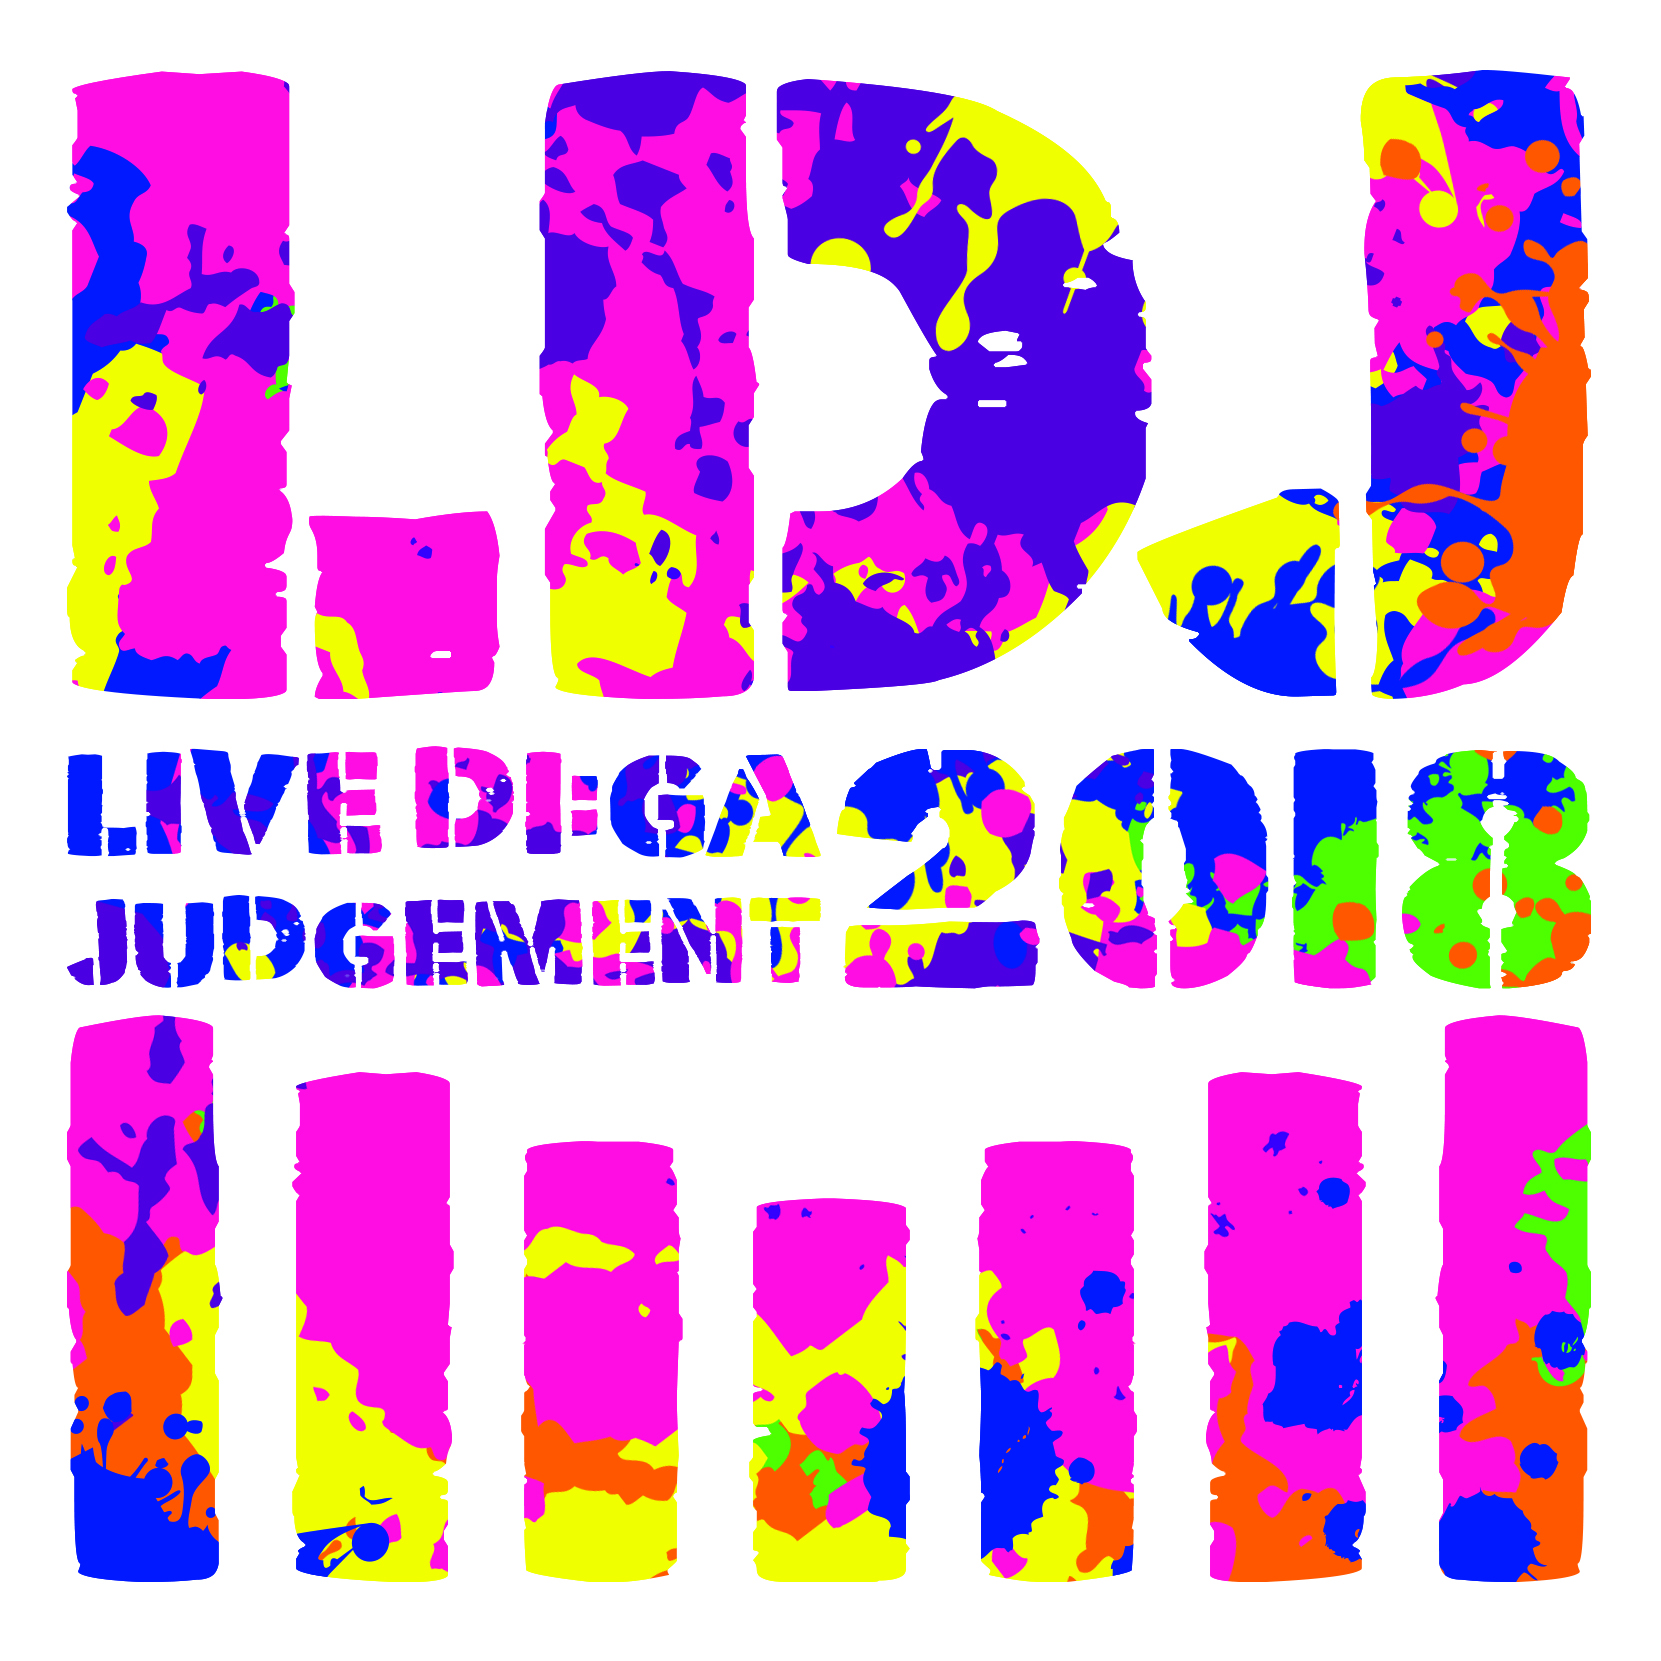 『LIVE DI:GA JUDGEMENT』